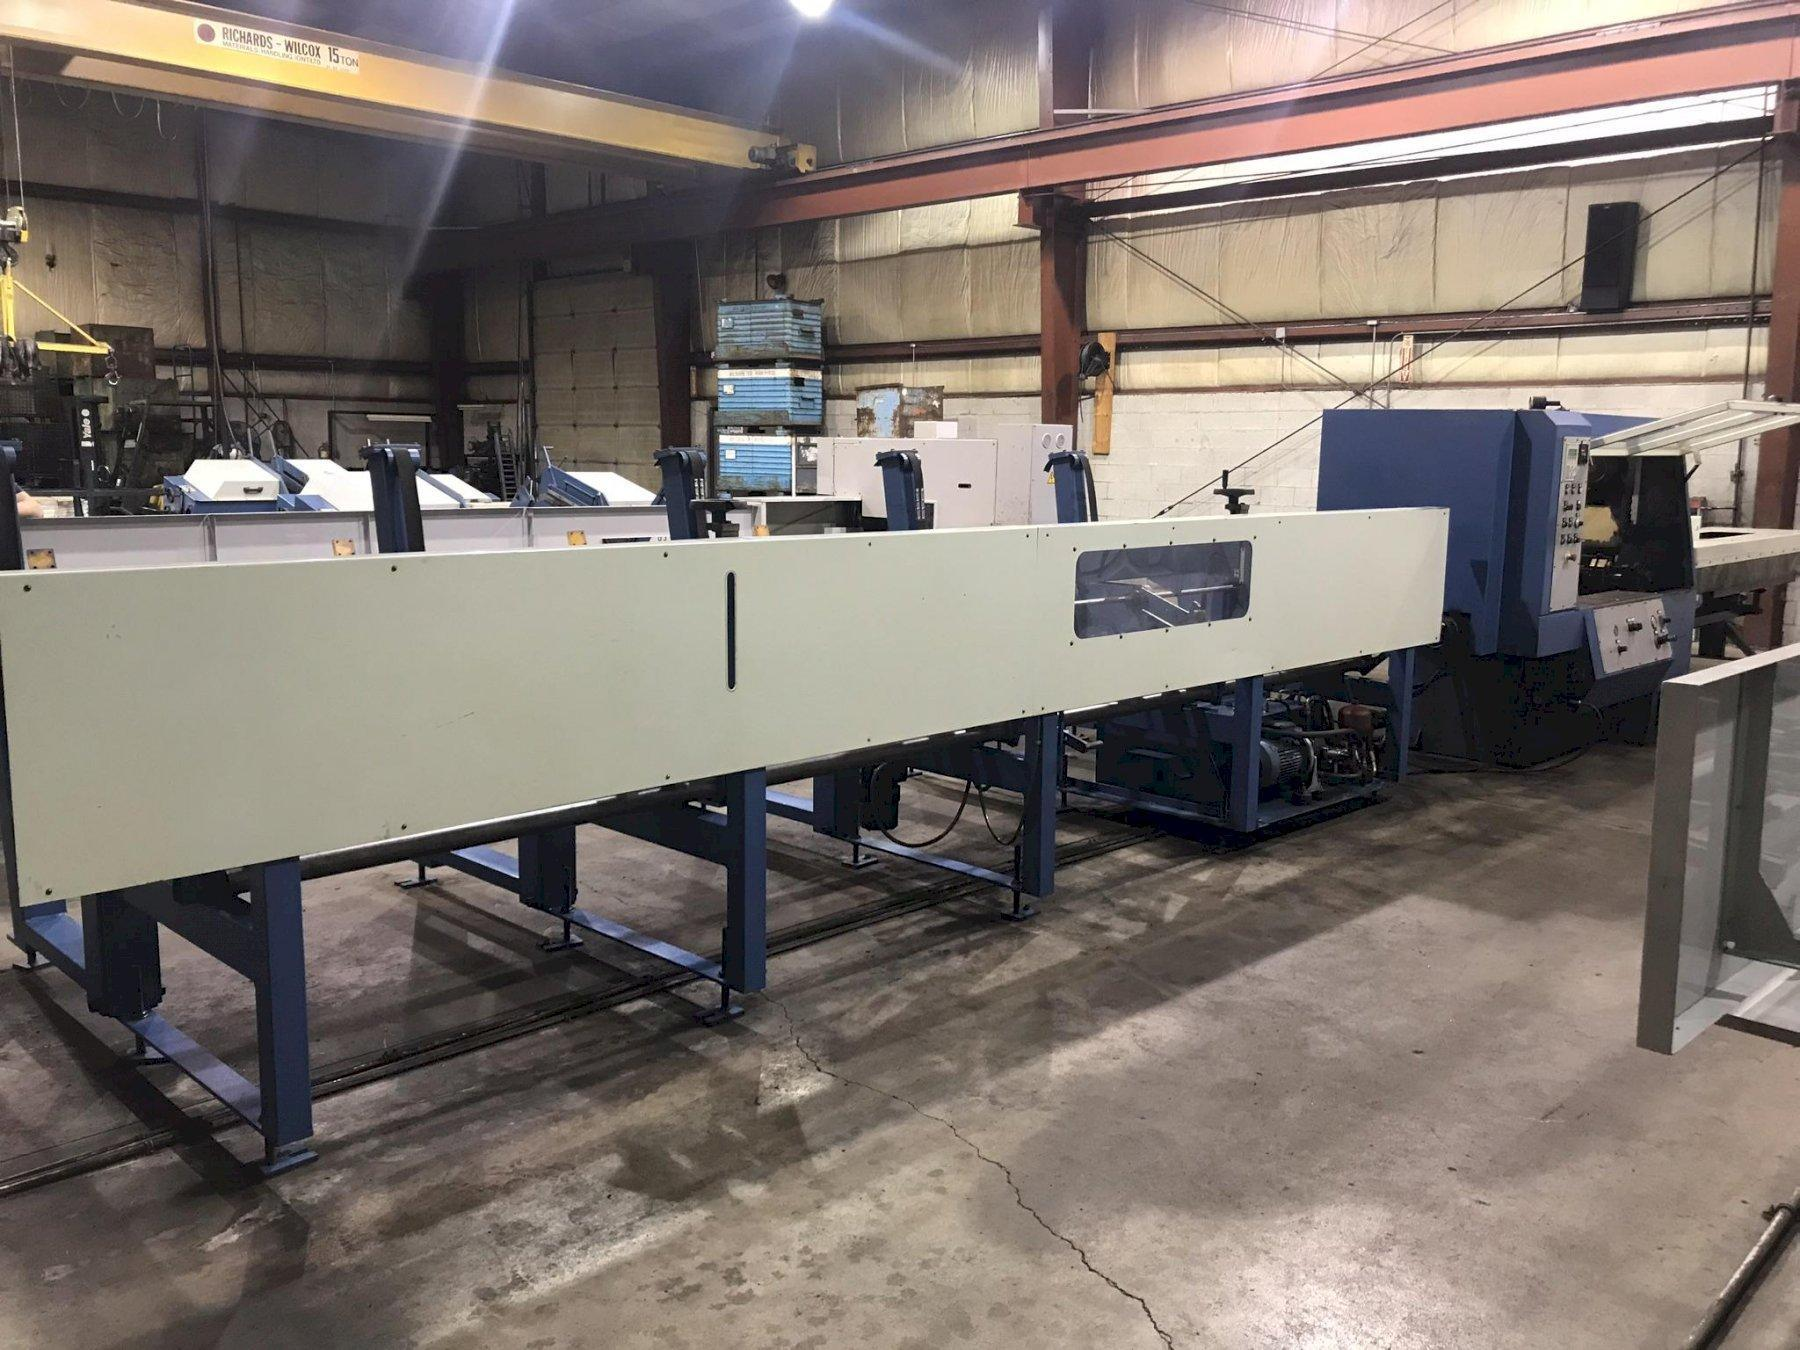 USED SIMEC MODEL CICLOMEC 122 CNC AUTOMATIC COLD SAW WITH 20' LOADING RACK, Stk# 10724, Year 2001